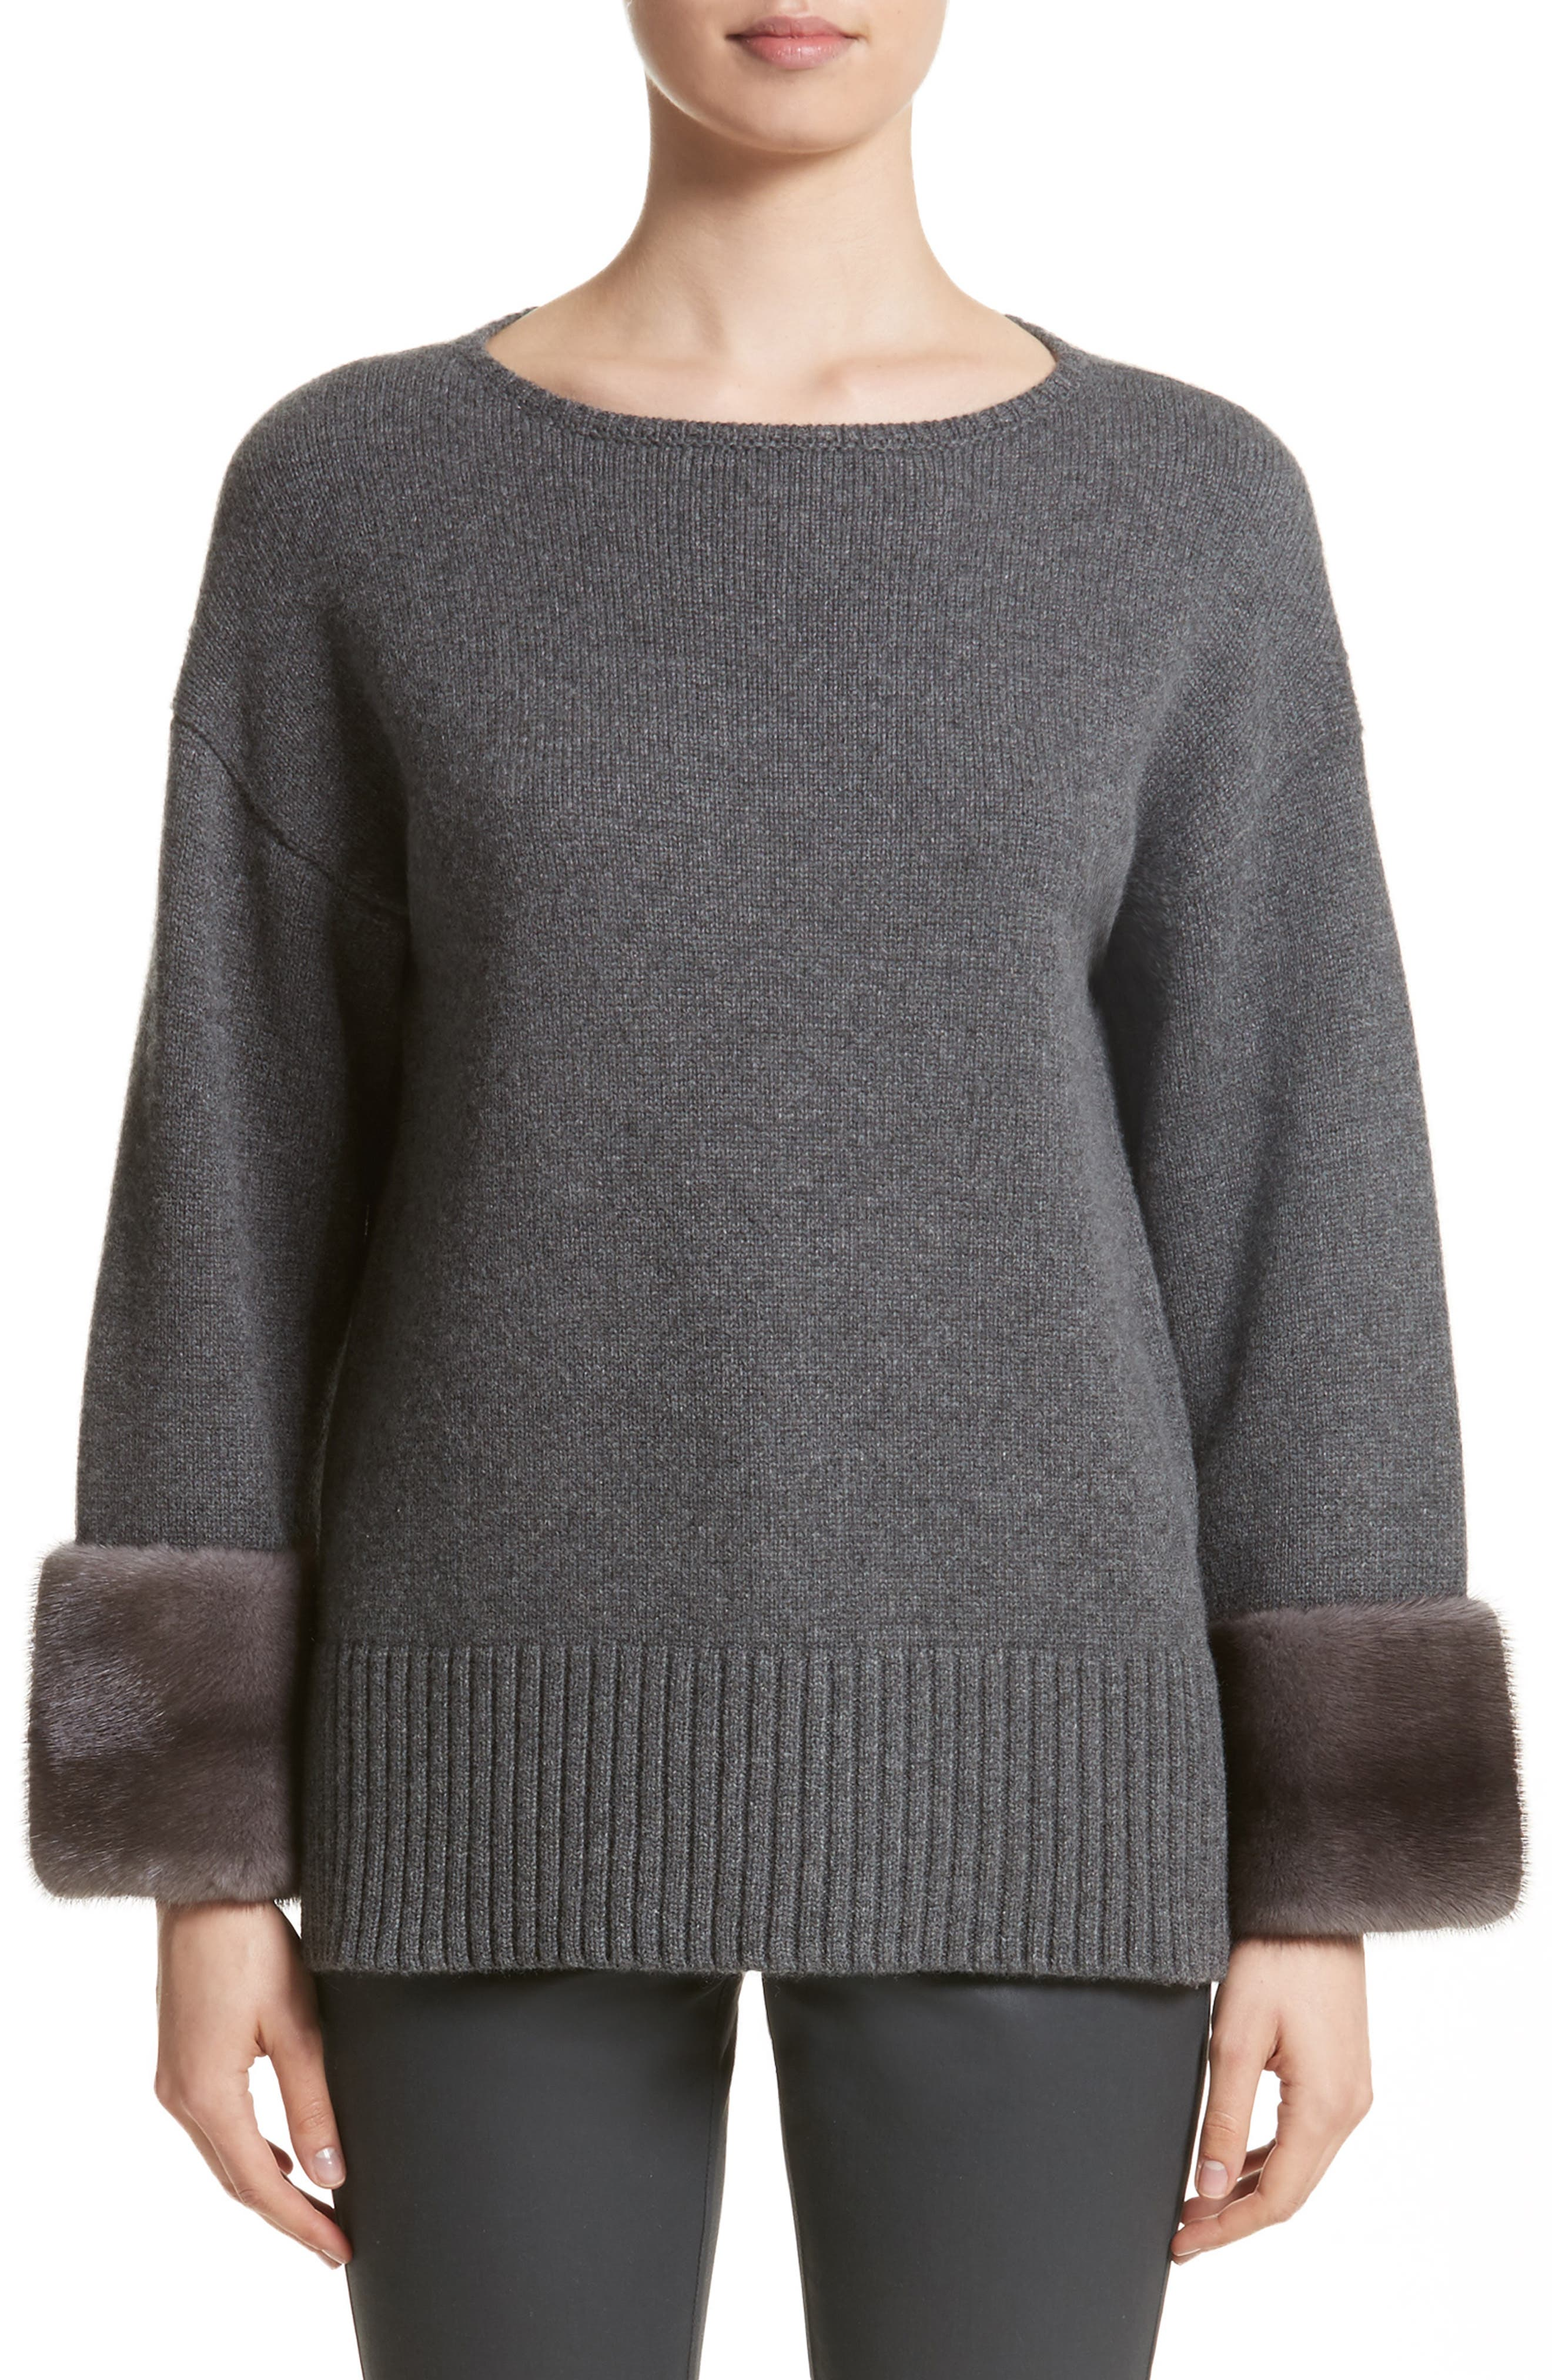 Alternate Image 1 Selected - Lafayette 148 New York Cashmere Sweater with Genuine Mink Fur Cuffs